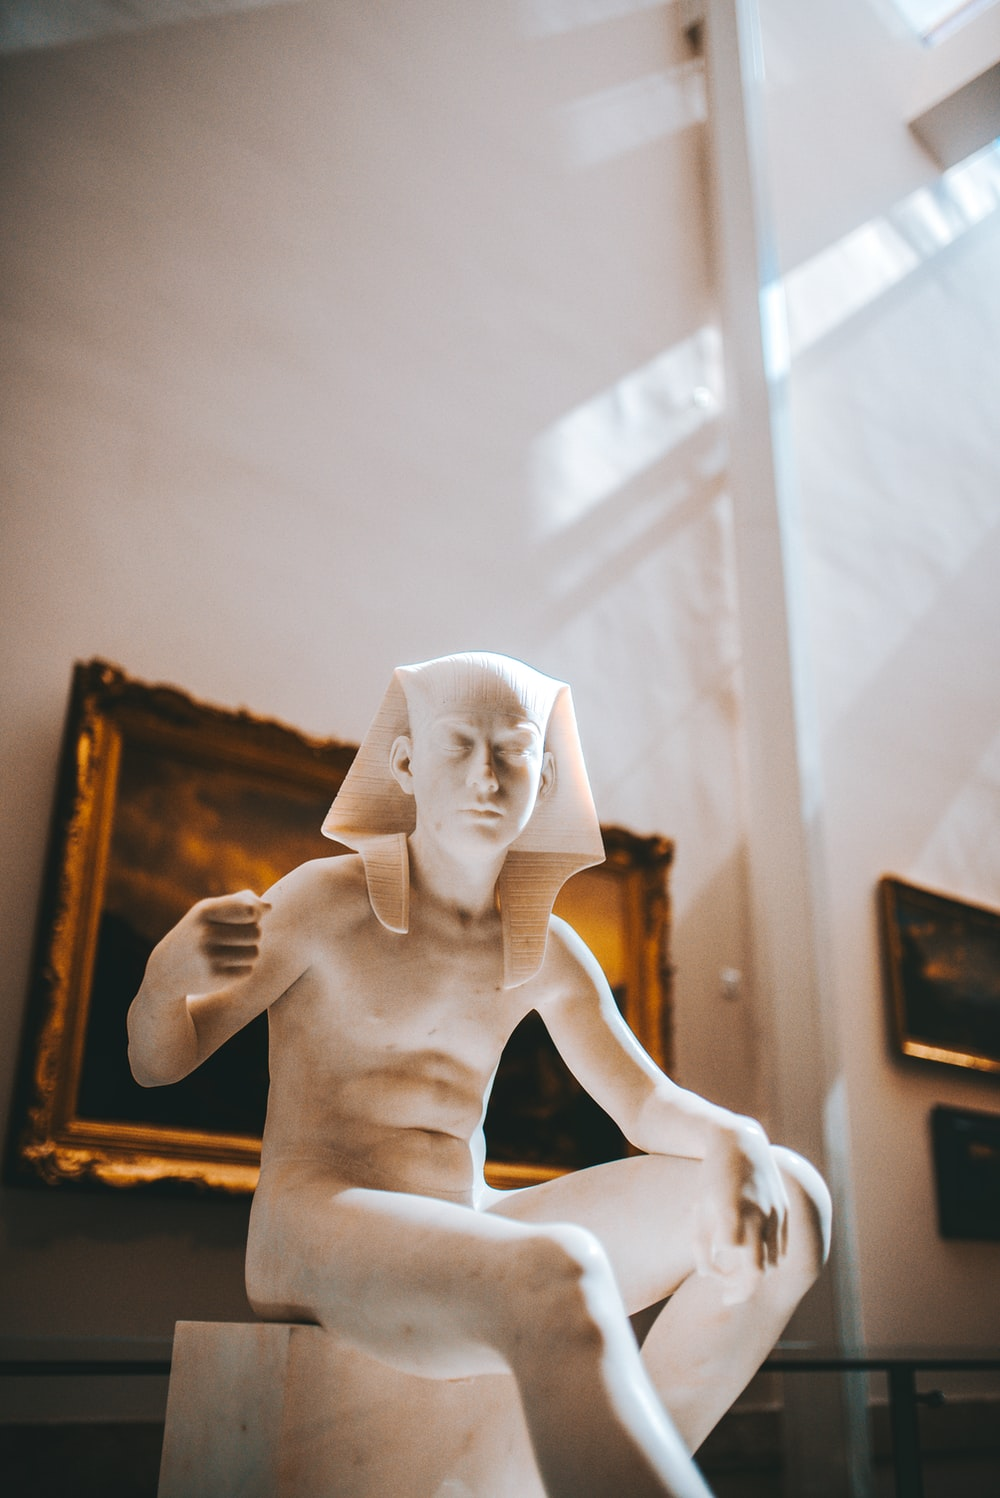 white ceramic figurine on brown wooden table